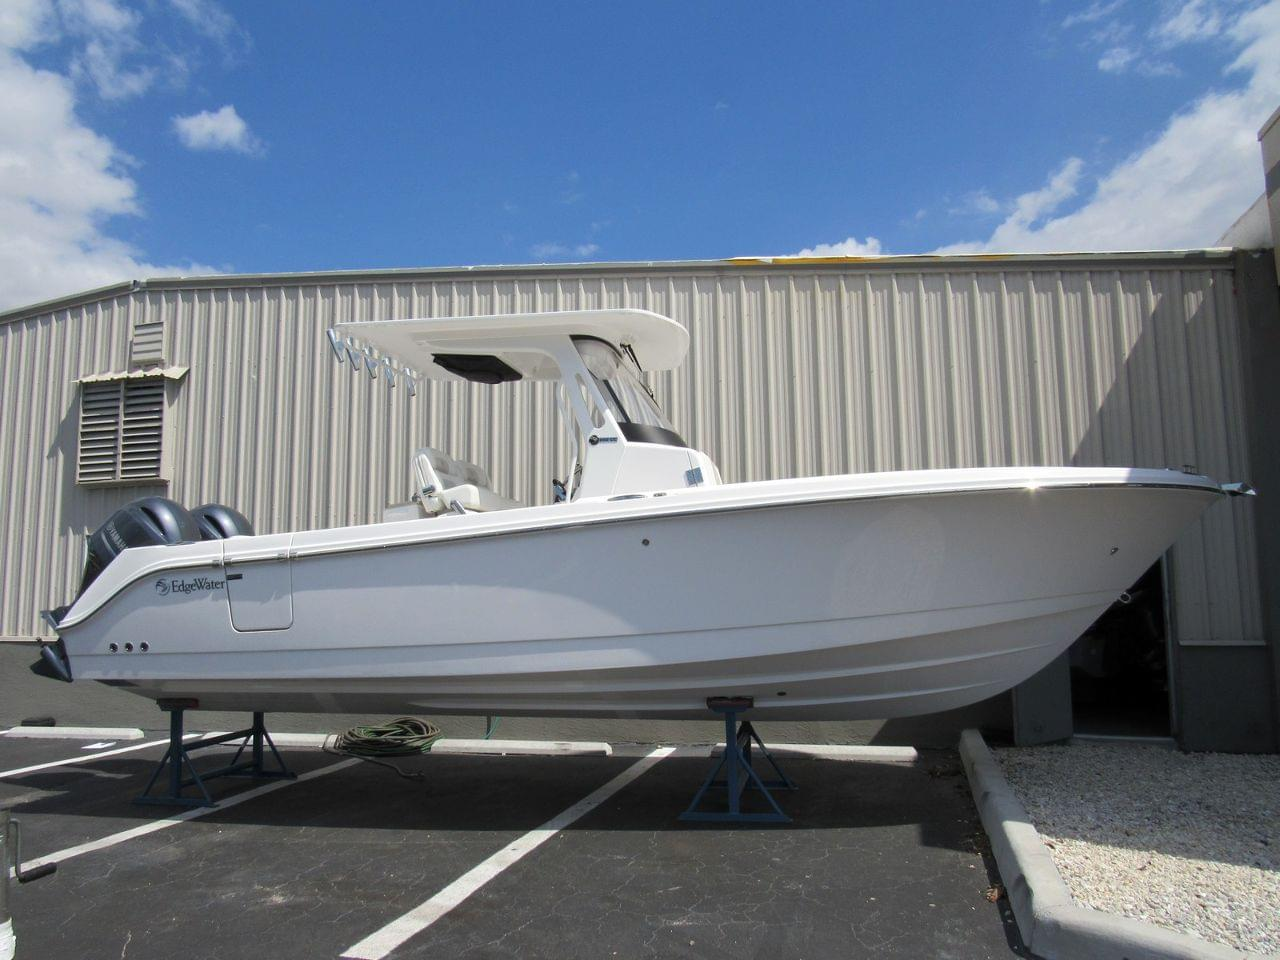 Super Air Nautique Price >> New 2017 Edgewater 262 CC, Stock #29590-B1 - The Boat House